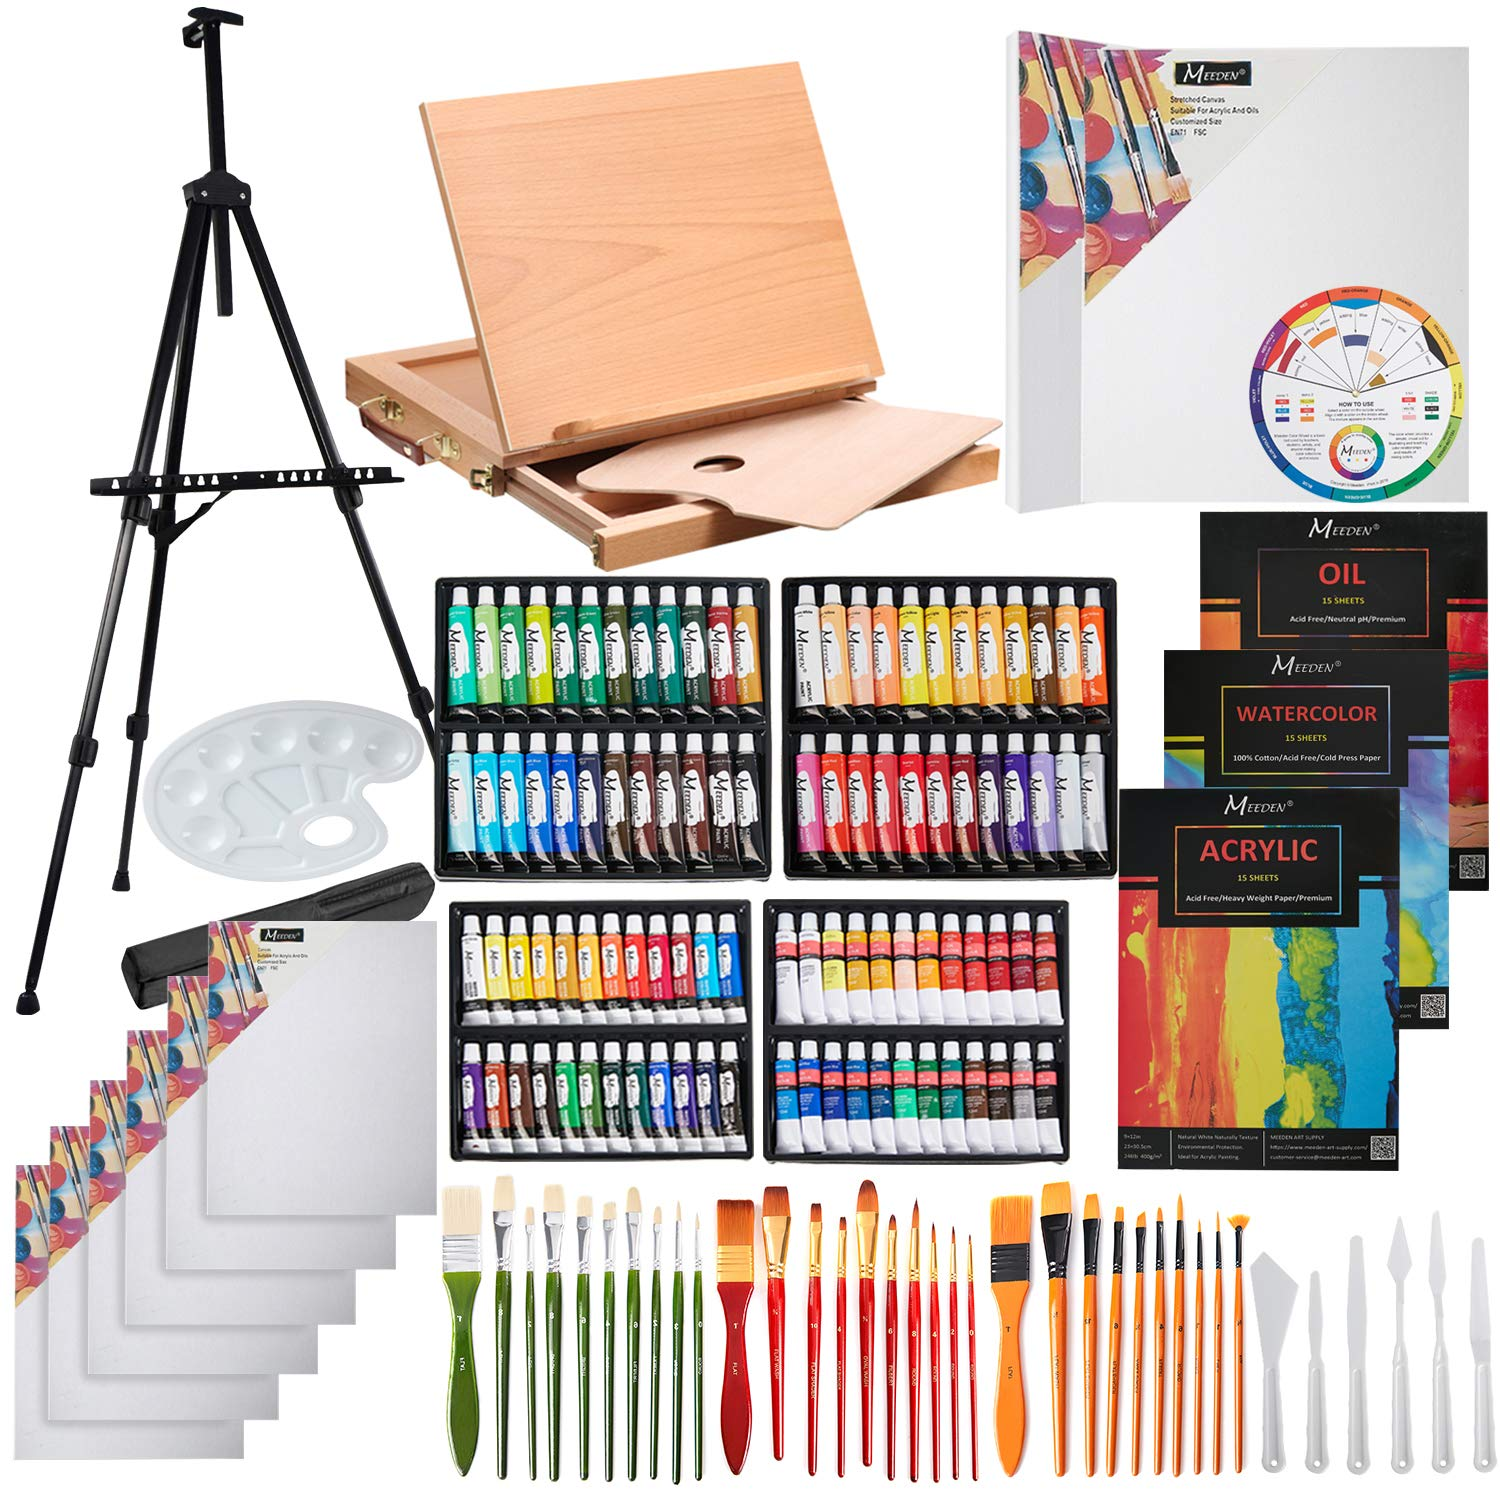 MEEDEN 148-Piece Deluxe Artist Painting Set with Aluminum and Solid Beech Wood Easel, Paint, Stretched Canvas and Accessories by MEEDEN